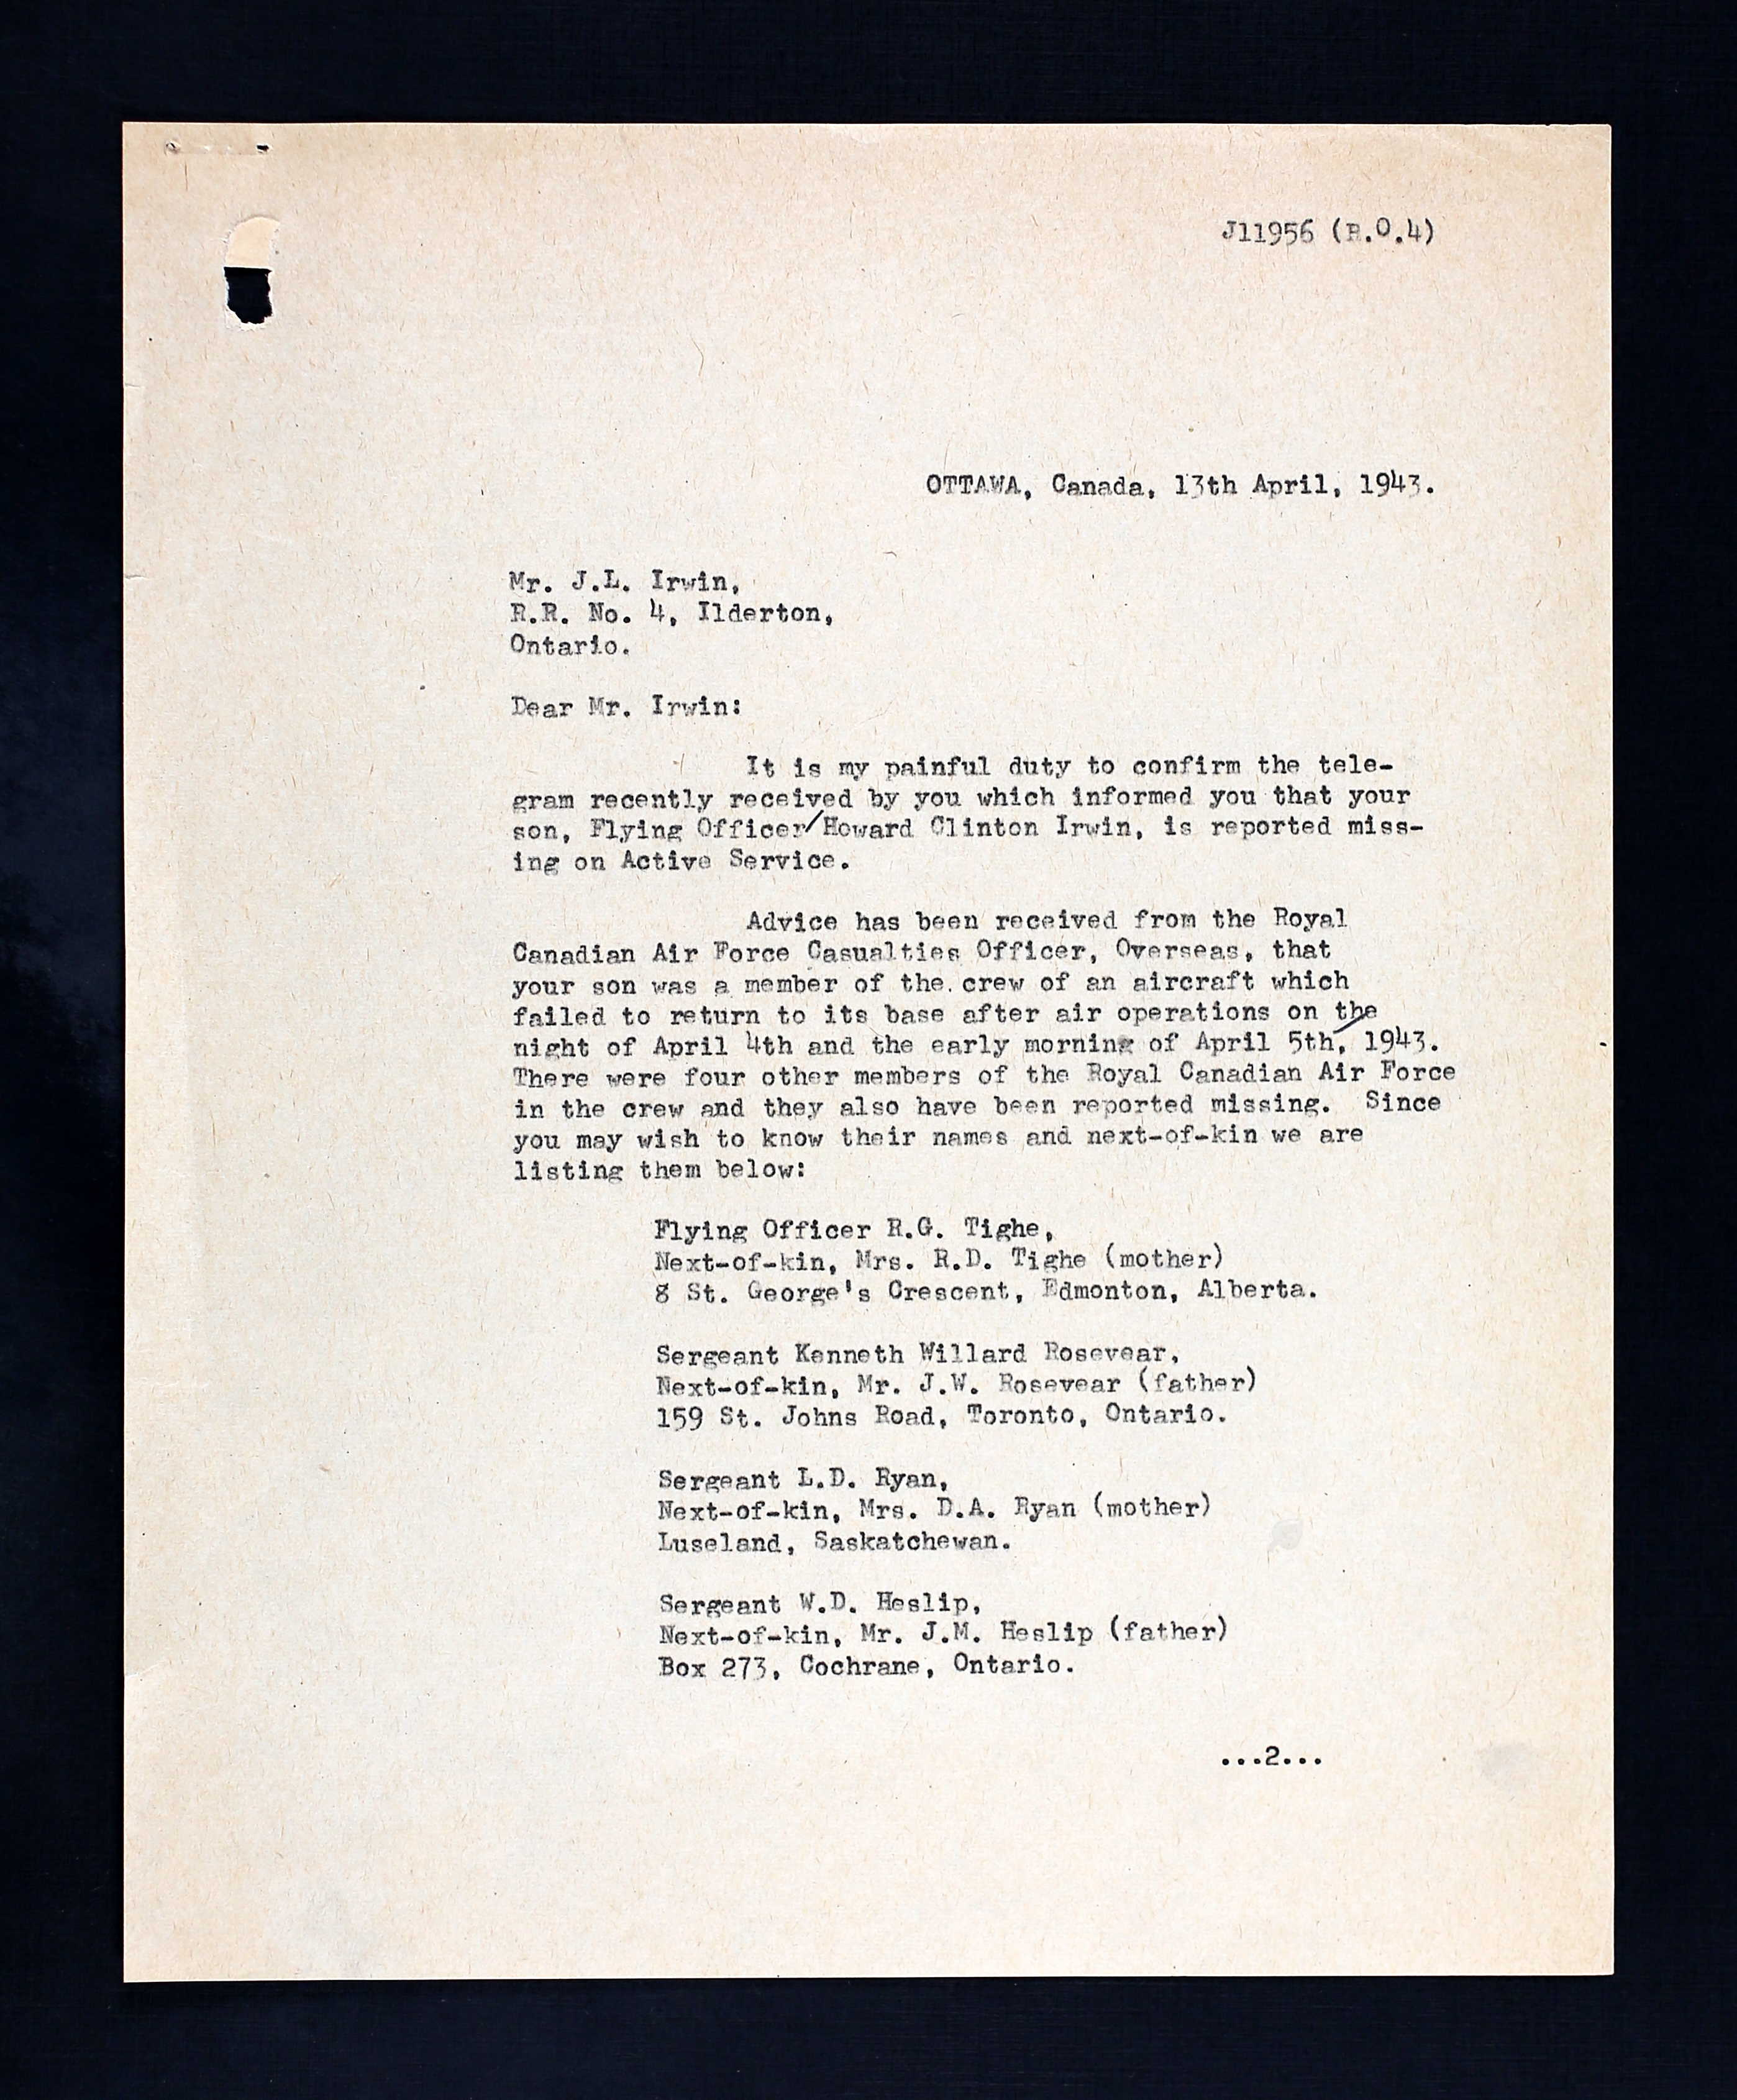 Letter– First page of a letter to F/O Irwin's father from an RCAF casualties officer, dated 13 April 1943.